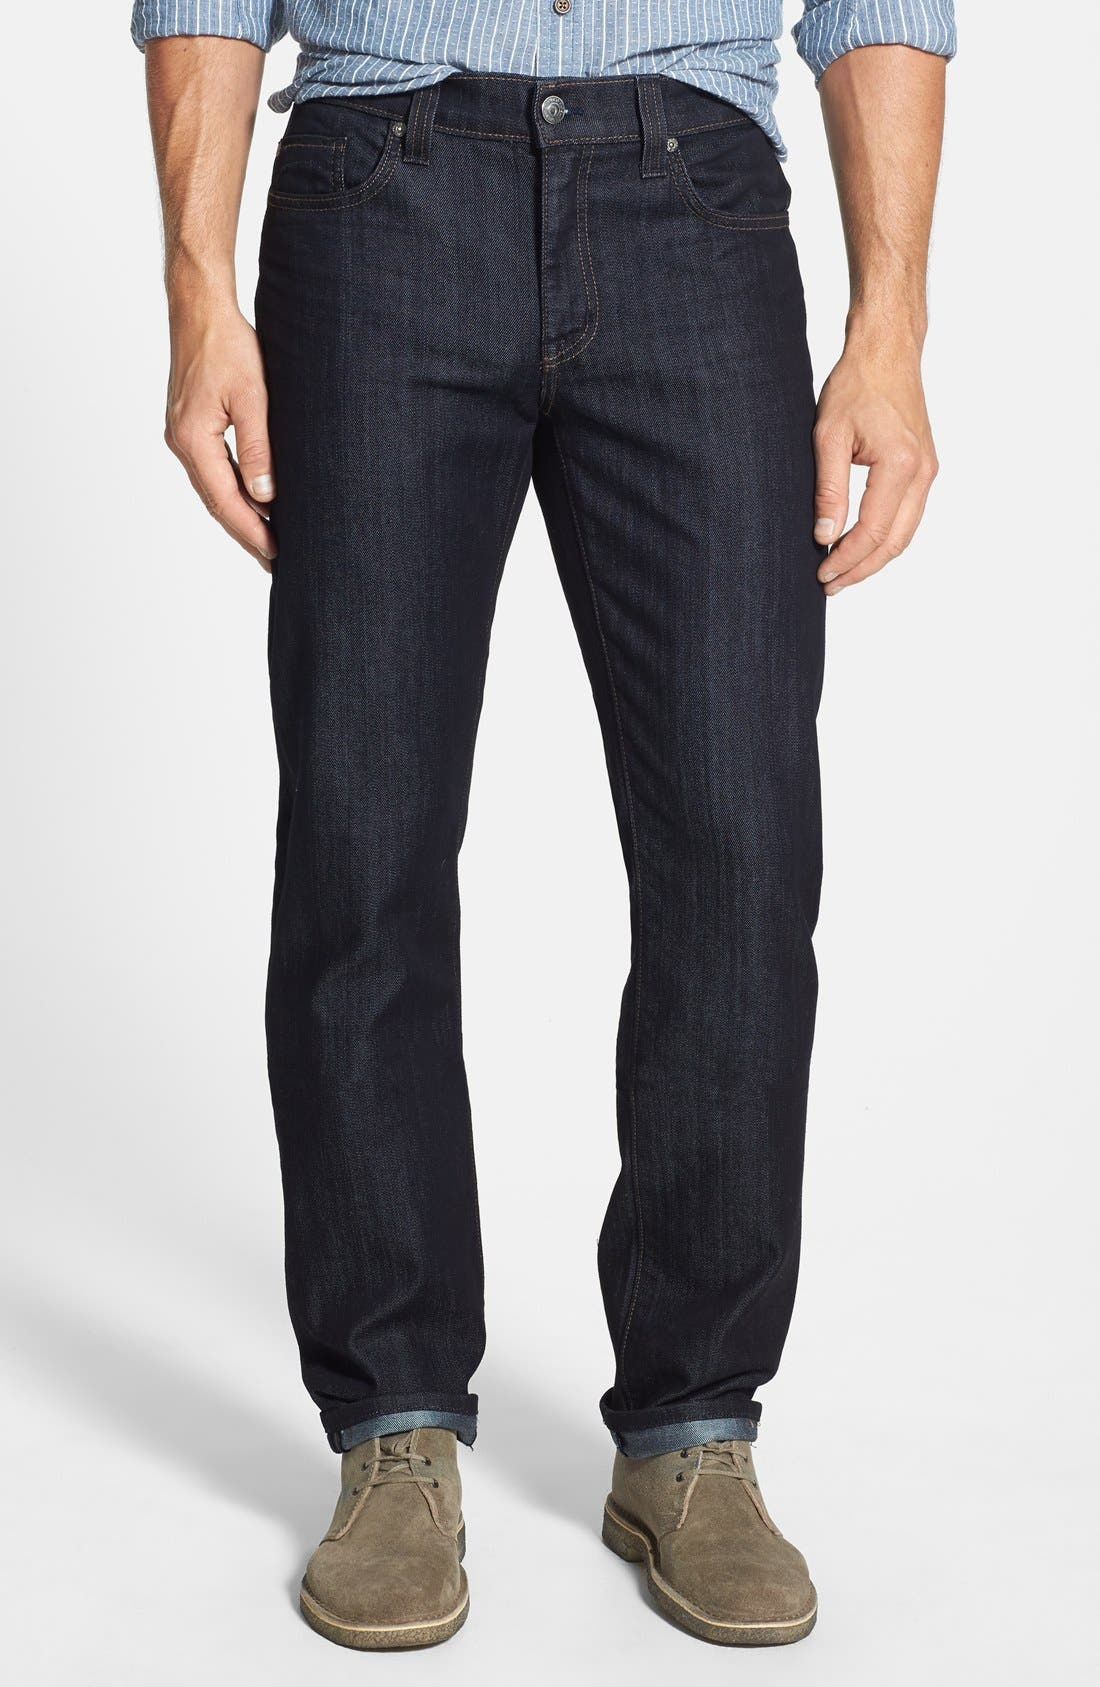 50-11 Relaxed Fit Jeans,                         Main,                         color, Revolution Rinse